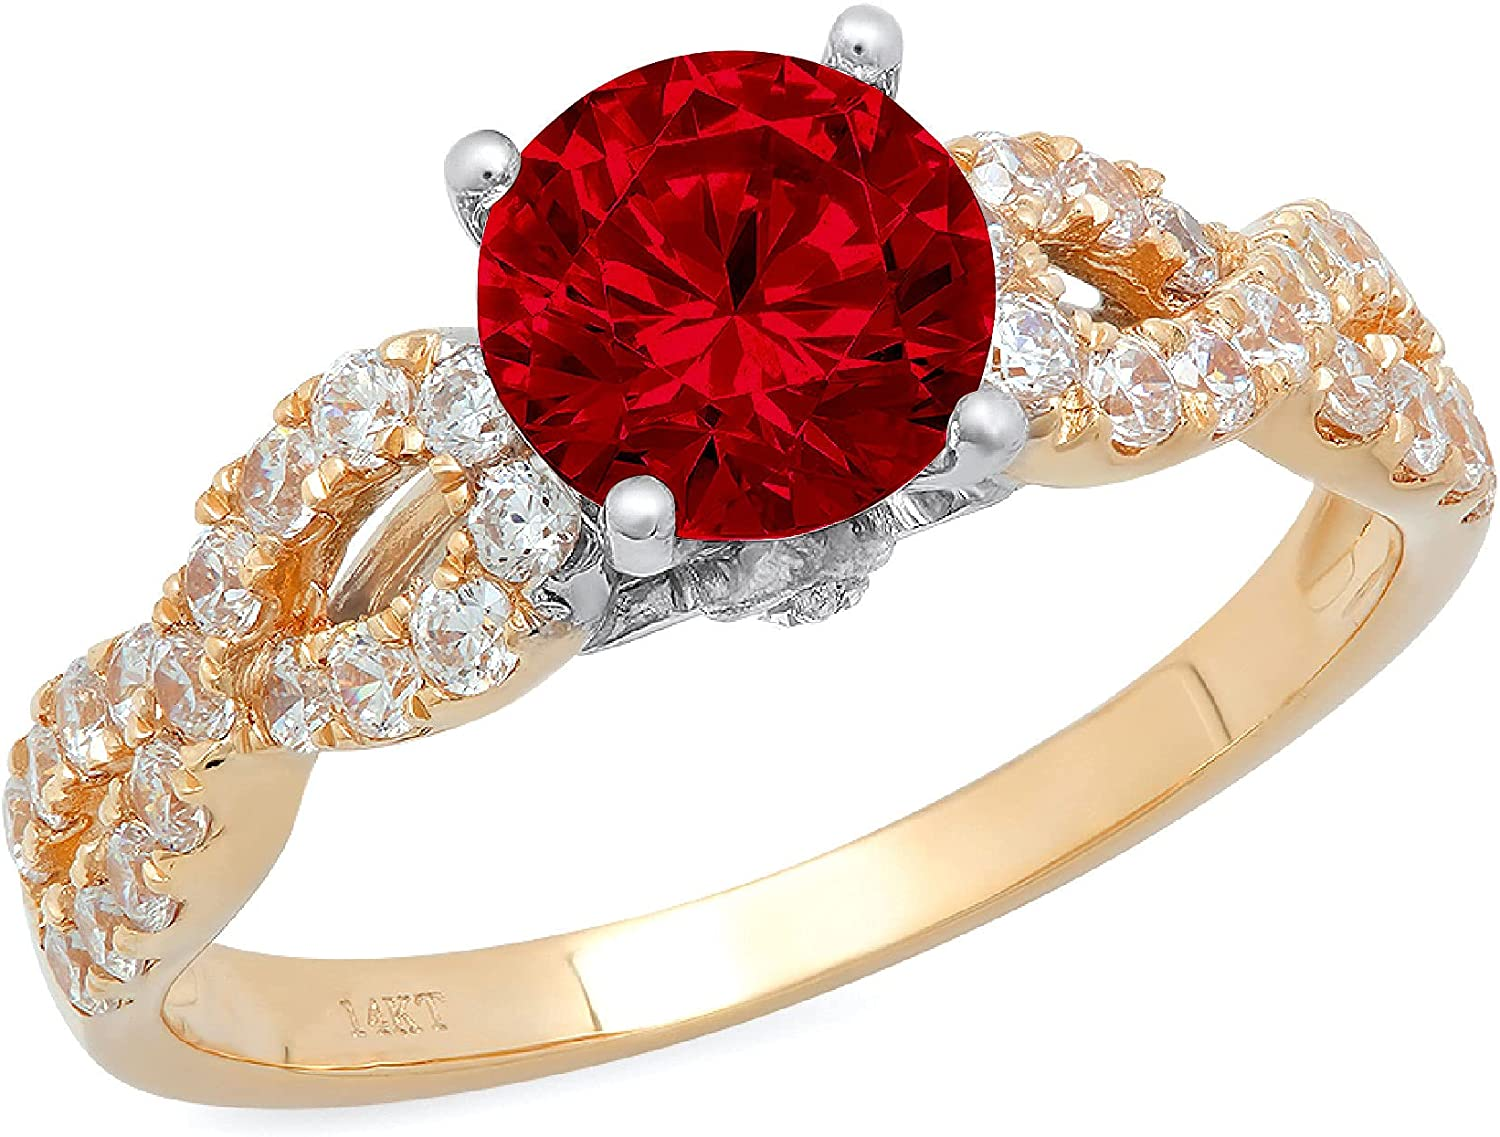 1.35ct Brilliant Round Cut Solitaire Genuine Flawless Natural Red Garnet Gemstone Engagement Promise Anniversary Bridal Wedding Accent Ring Solid 18K 2 tone Gold